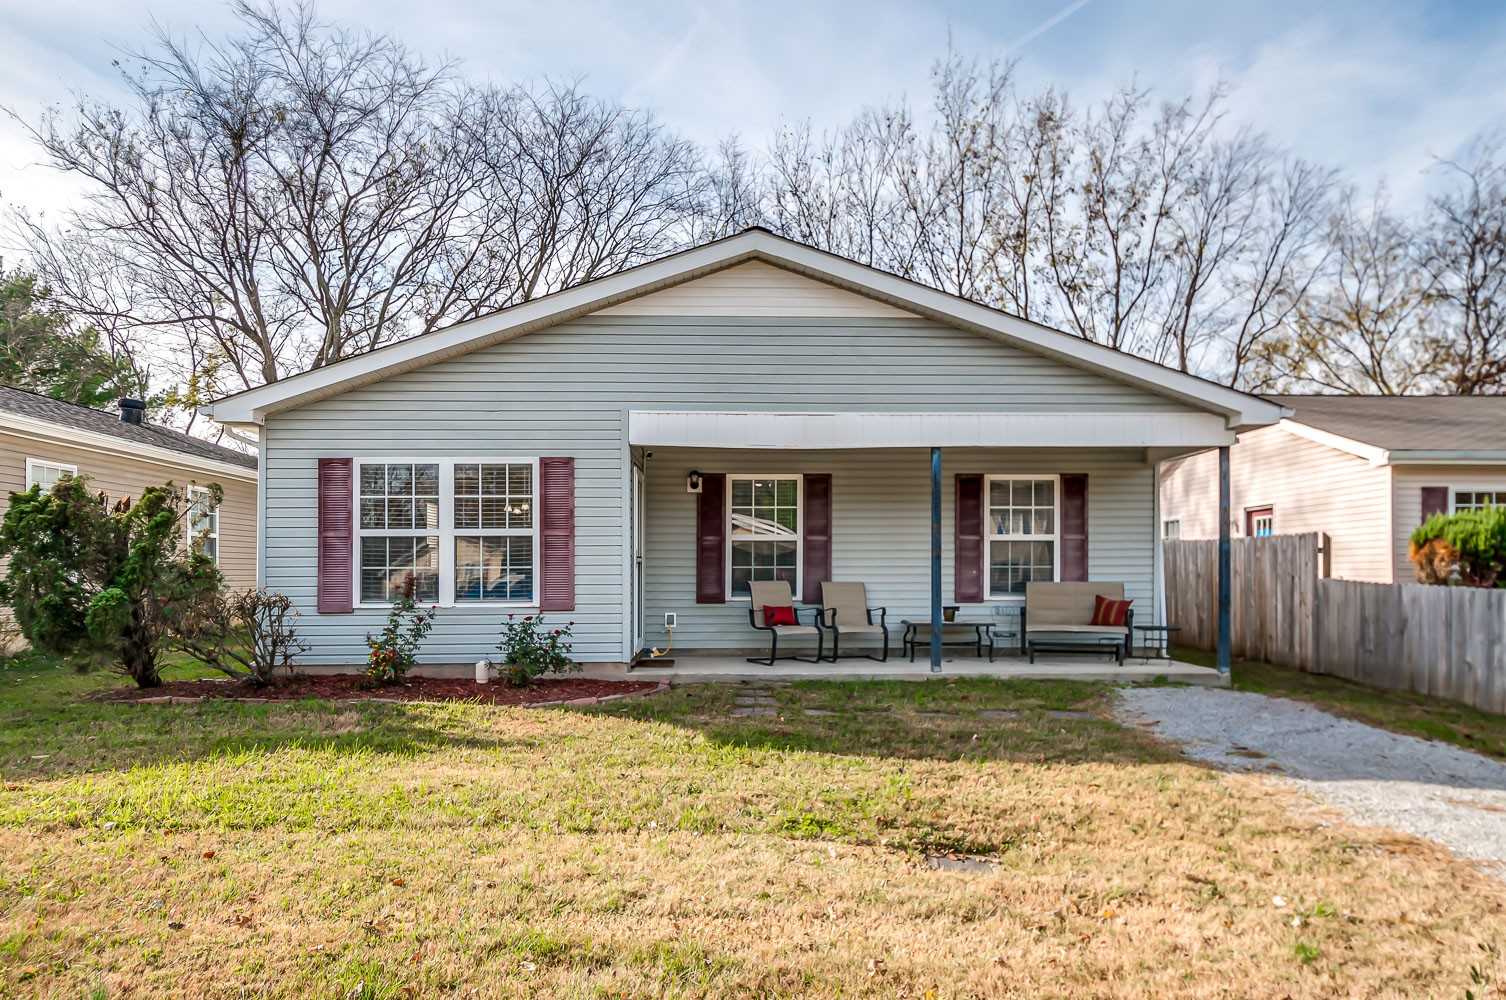 This adorable cottage style home is located just minutes from historic downtown Franklin.  Inside you'll find beautiful Bamboo flooring and stainless steel kitchen appliances with a granite countertop Island. Outside you'll find a privacy fence around a sweet back yard and a brand new roof (November 2020).  ***Owner Occupant Contracts Only***